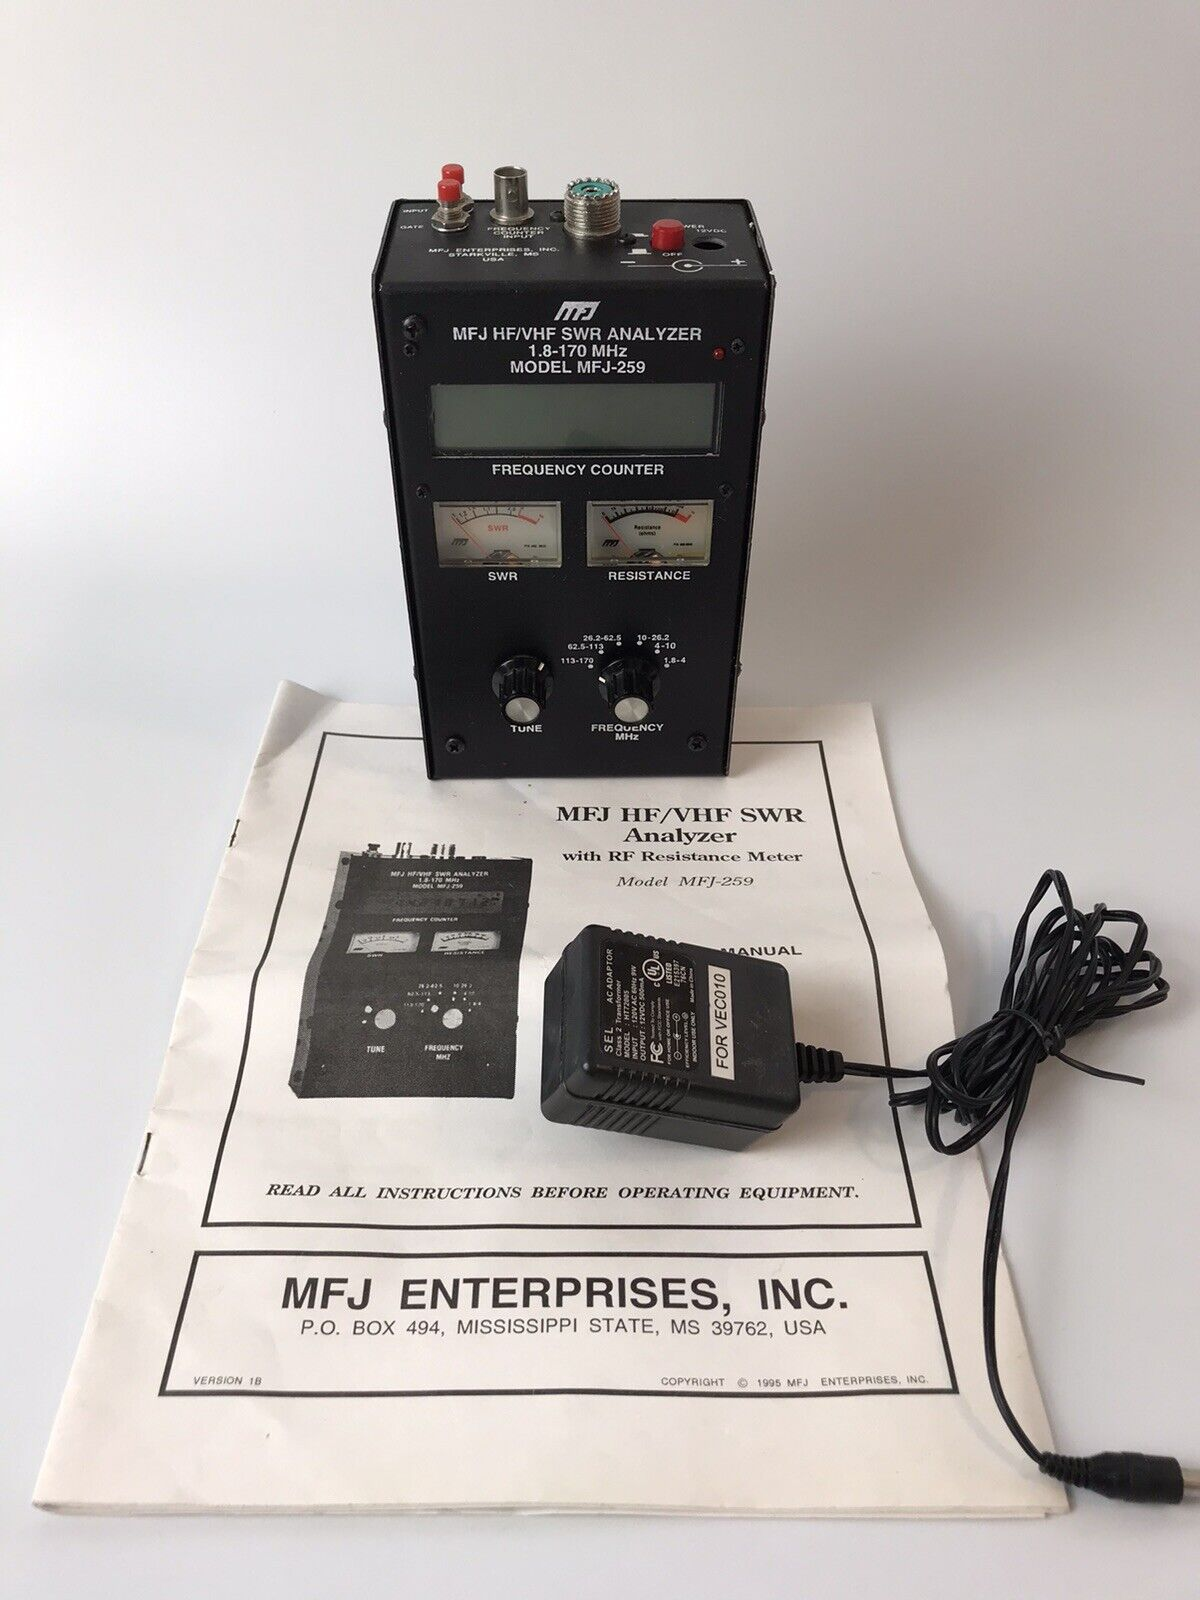 MFJ 259 HF/VHF ANTENNA SWR ANALYZER AND FREQ COUNTER FOR HAM RADIO AMATEUR. Buy it now for 250.00